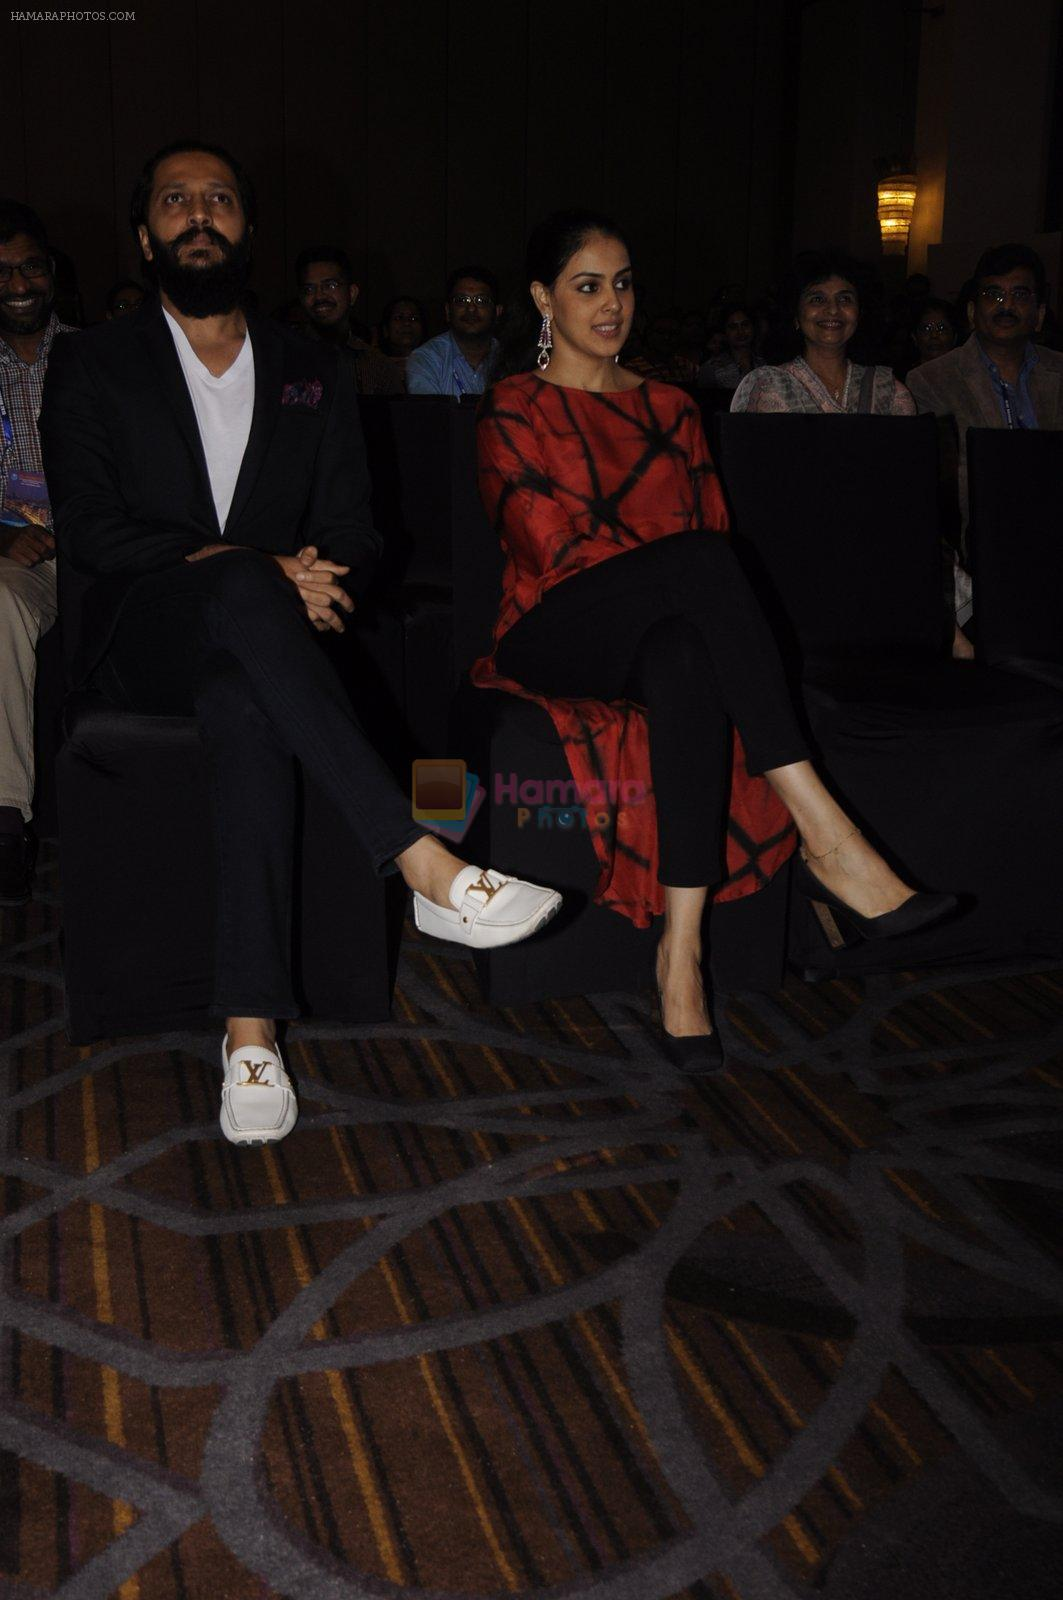 Riteish Deshmukh & Genelia D souza launch the Labour Analgesia app Birth Ease on 16th Oct 2016